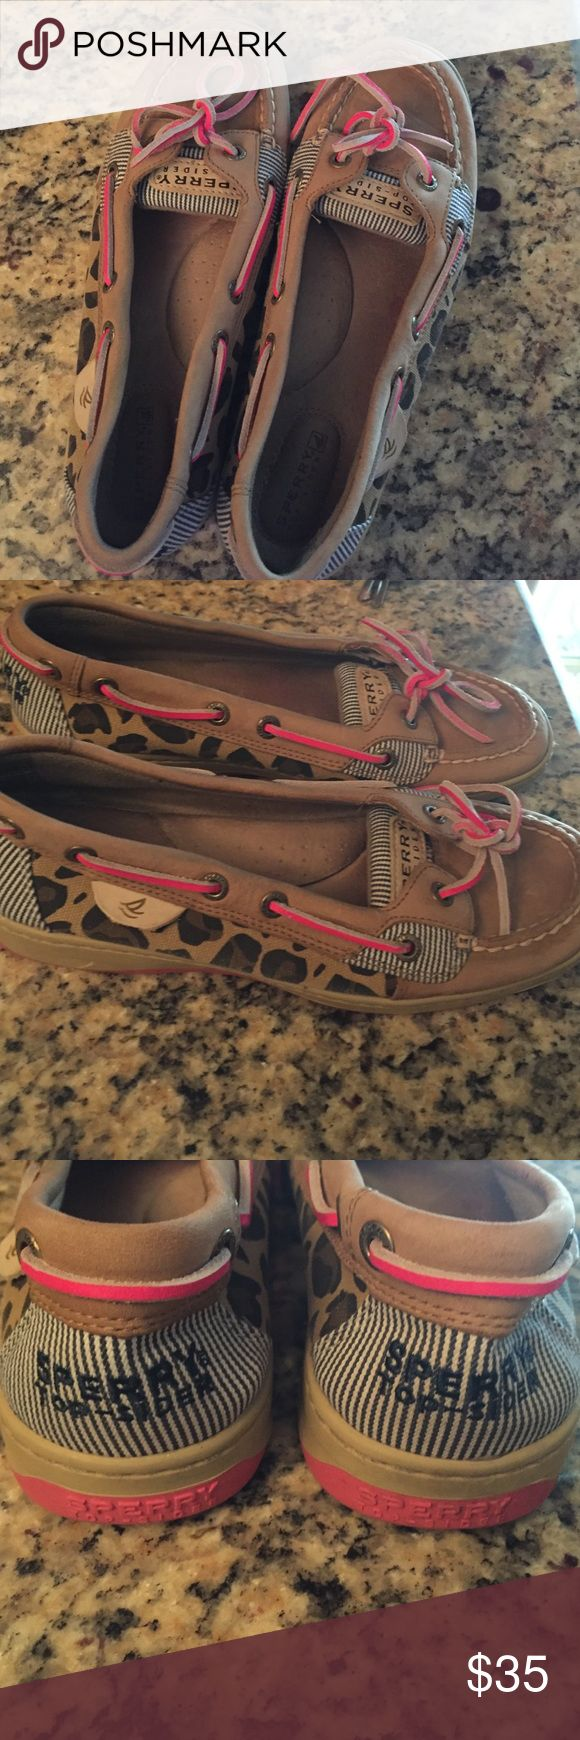 Leopard sperrys top slider shoes In great condition👍🏼 I will clean bottom before shipping 😊 Sperry Top-Sider Shoes